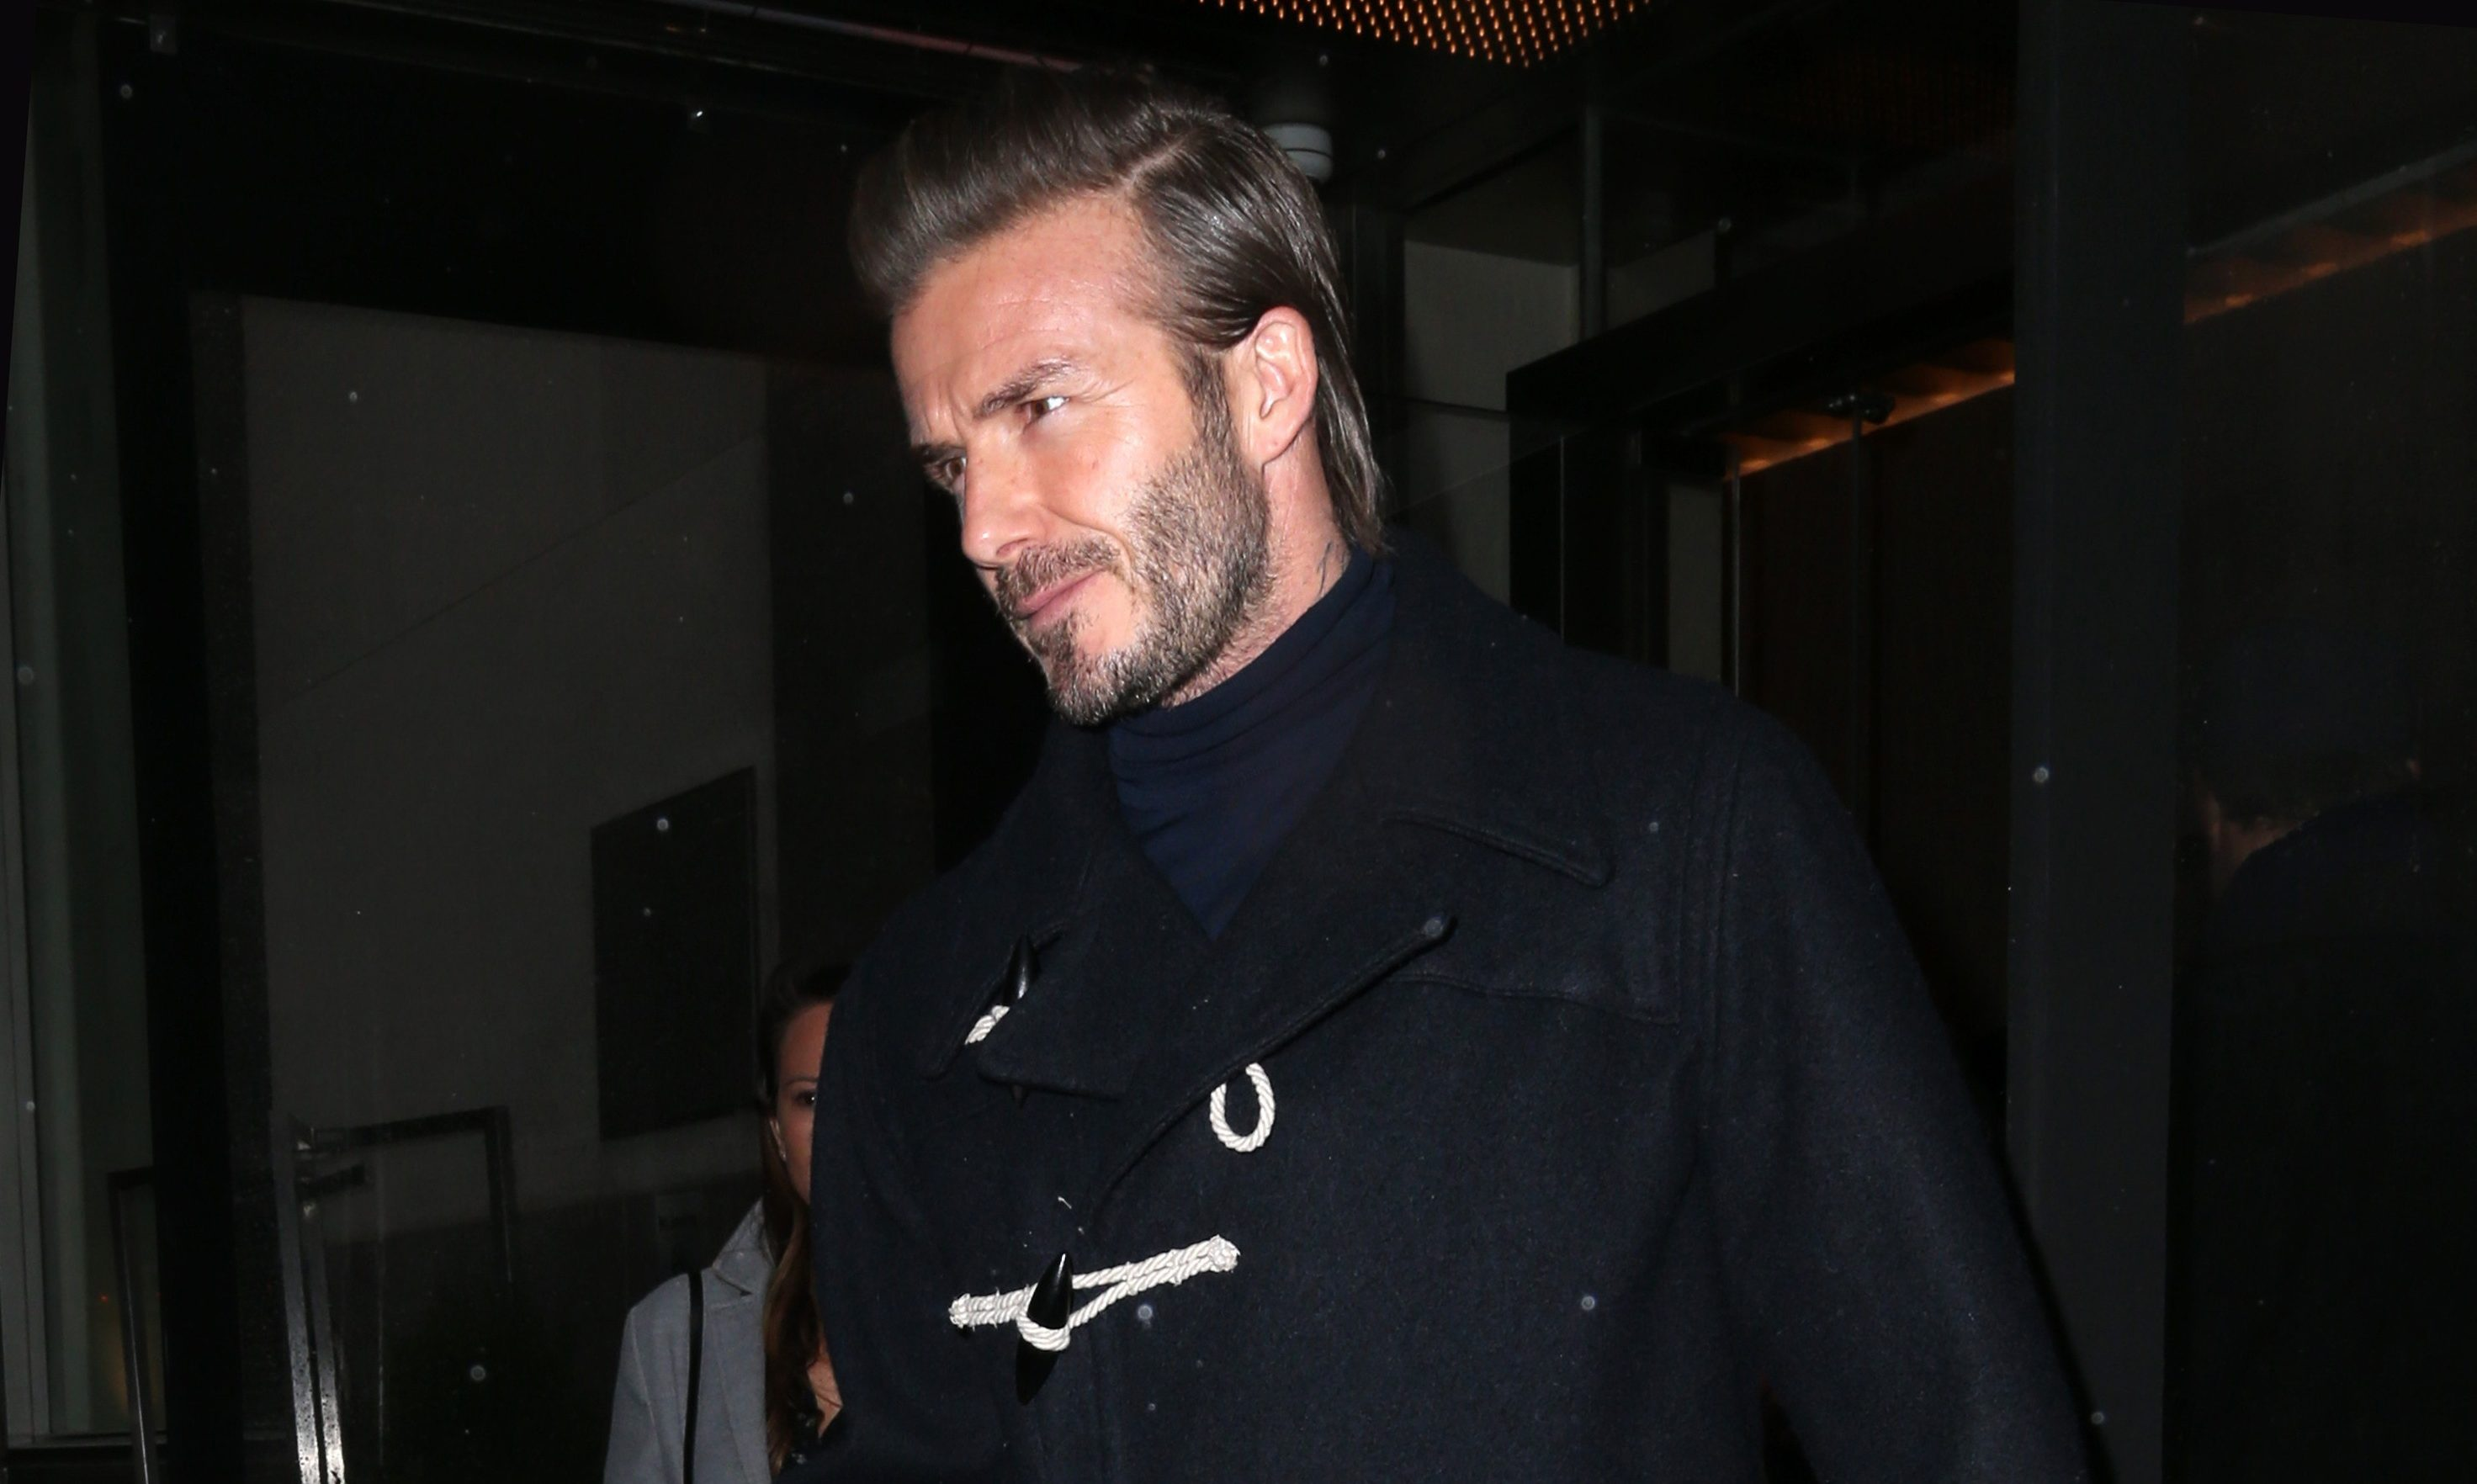 David Beckham forced out of pub by 'hooligans'